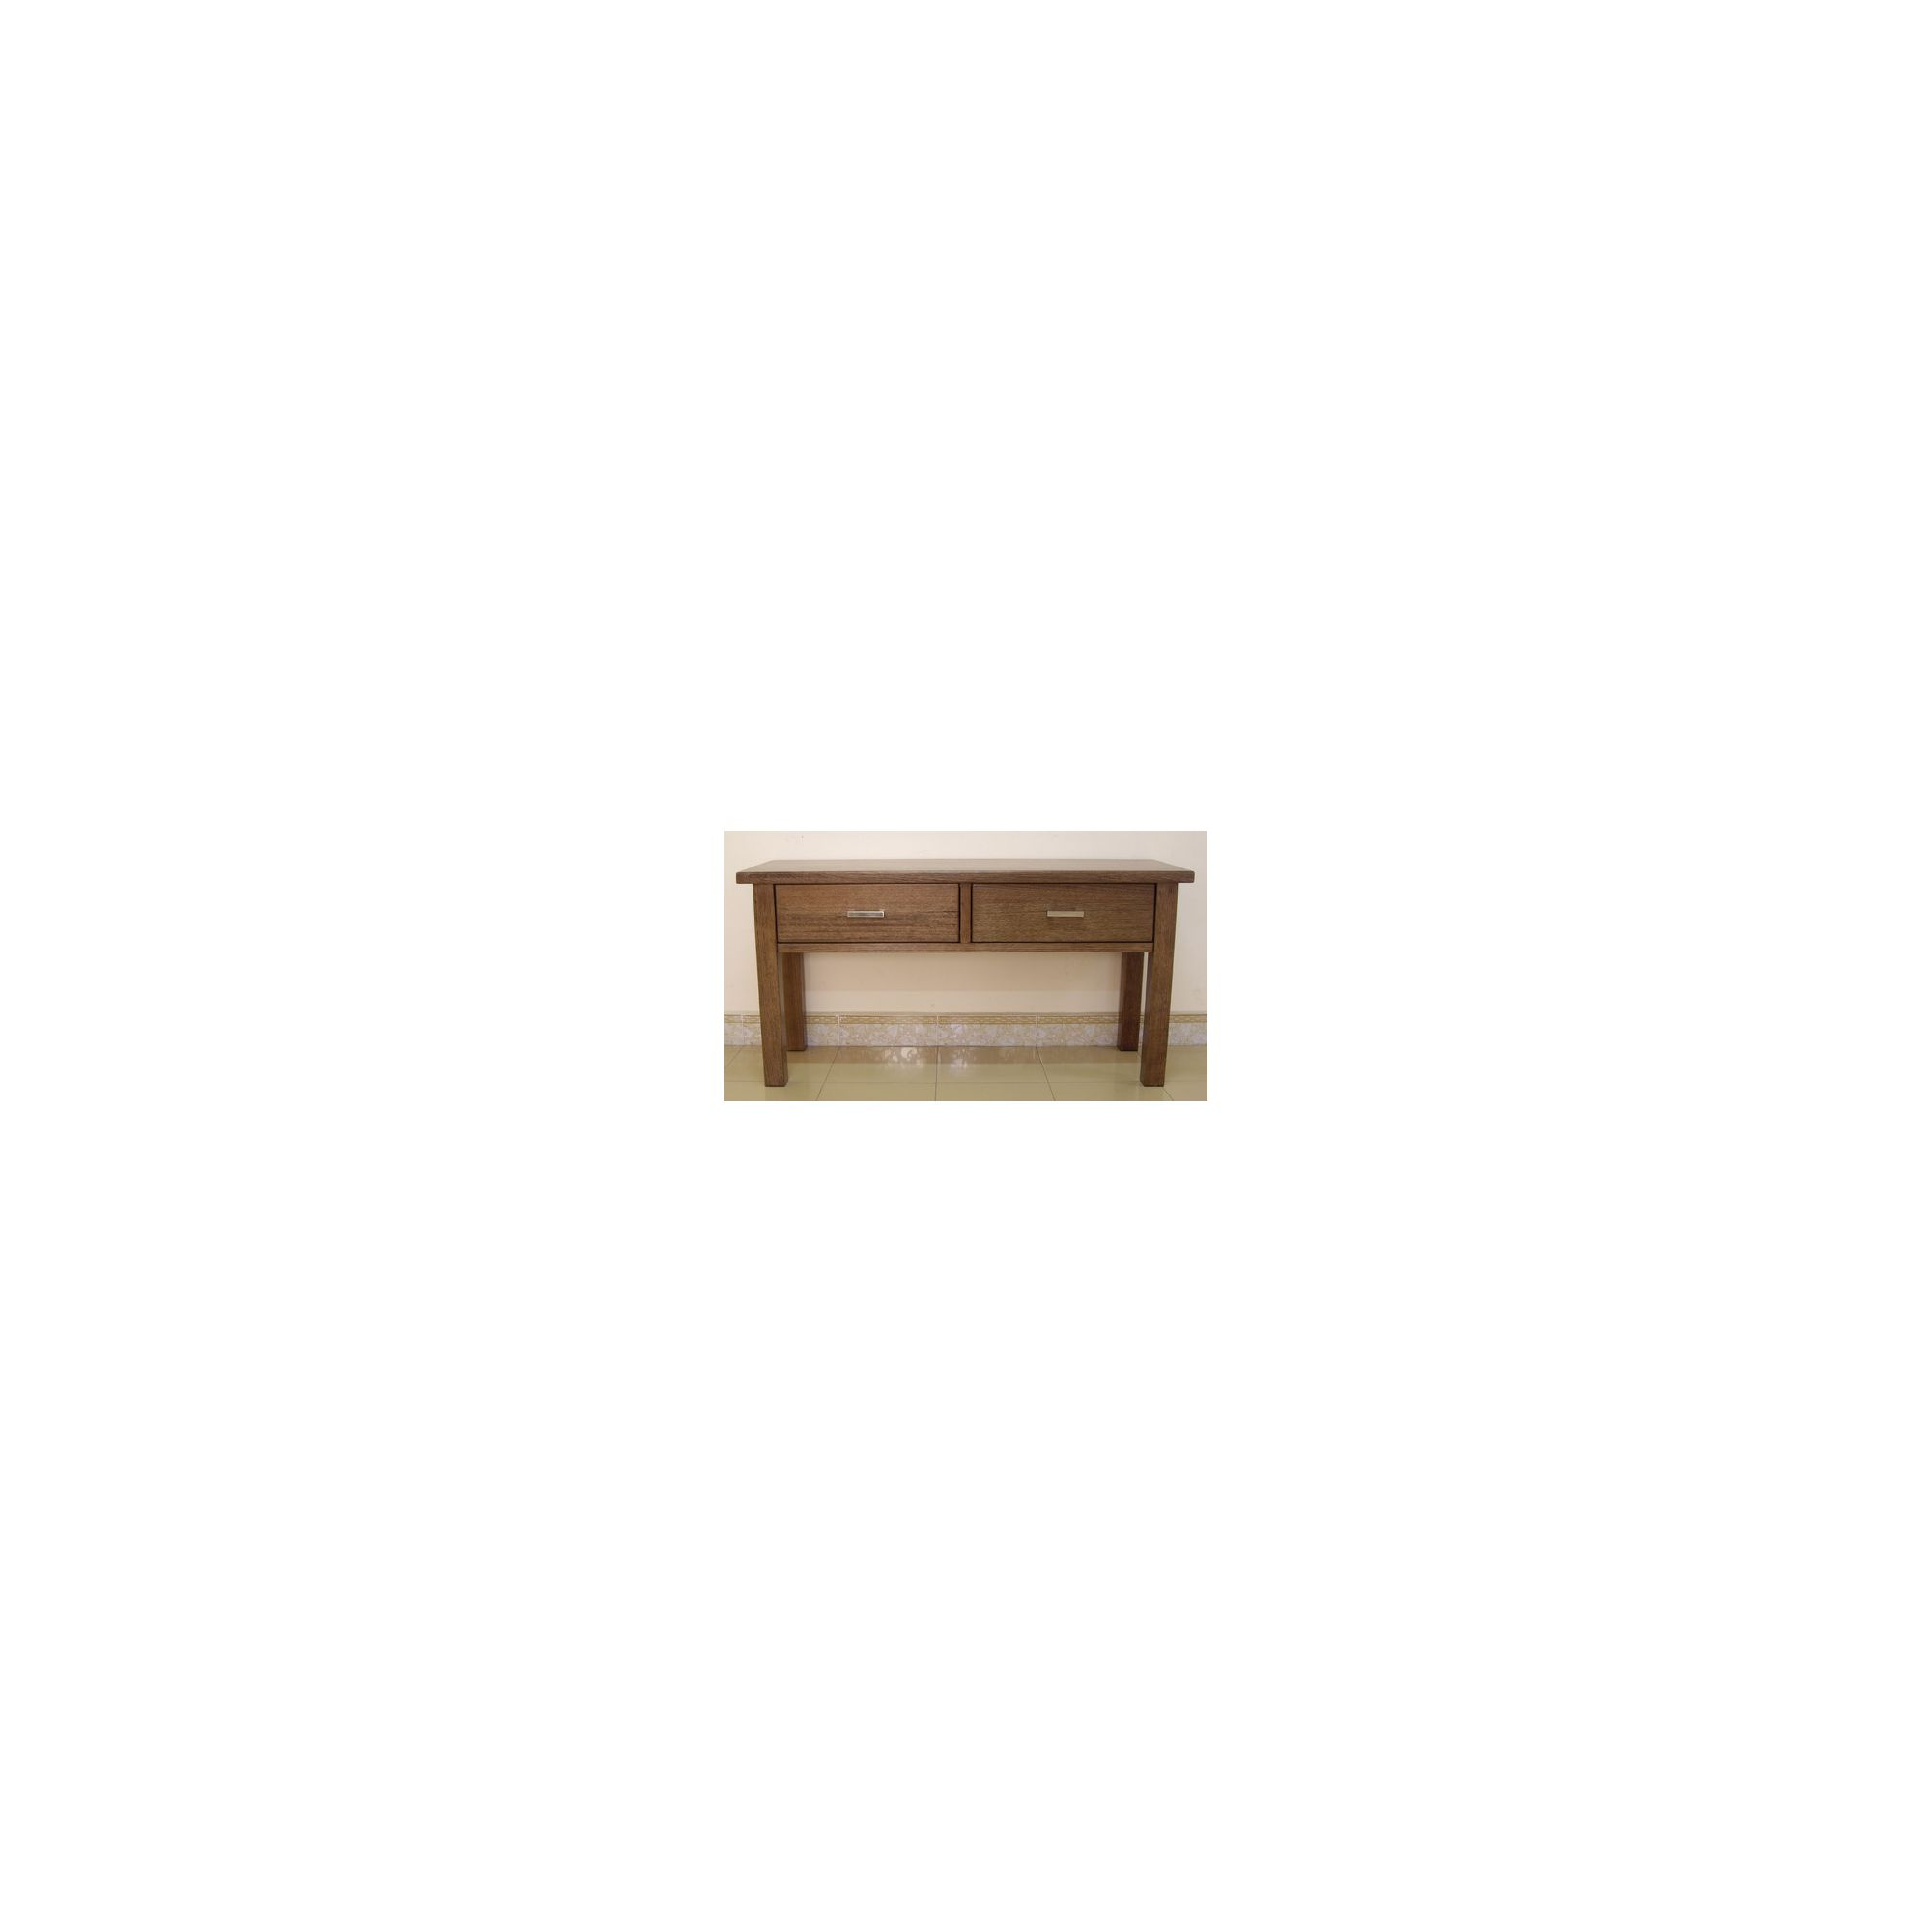 Wildwood Carla 2 Drawer Console in Driftwood at Tesco Direct